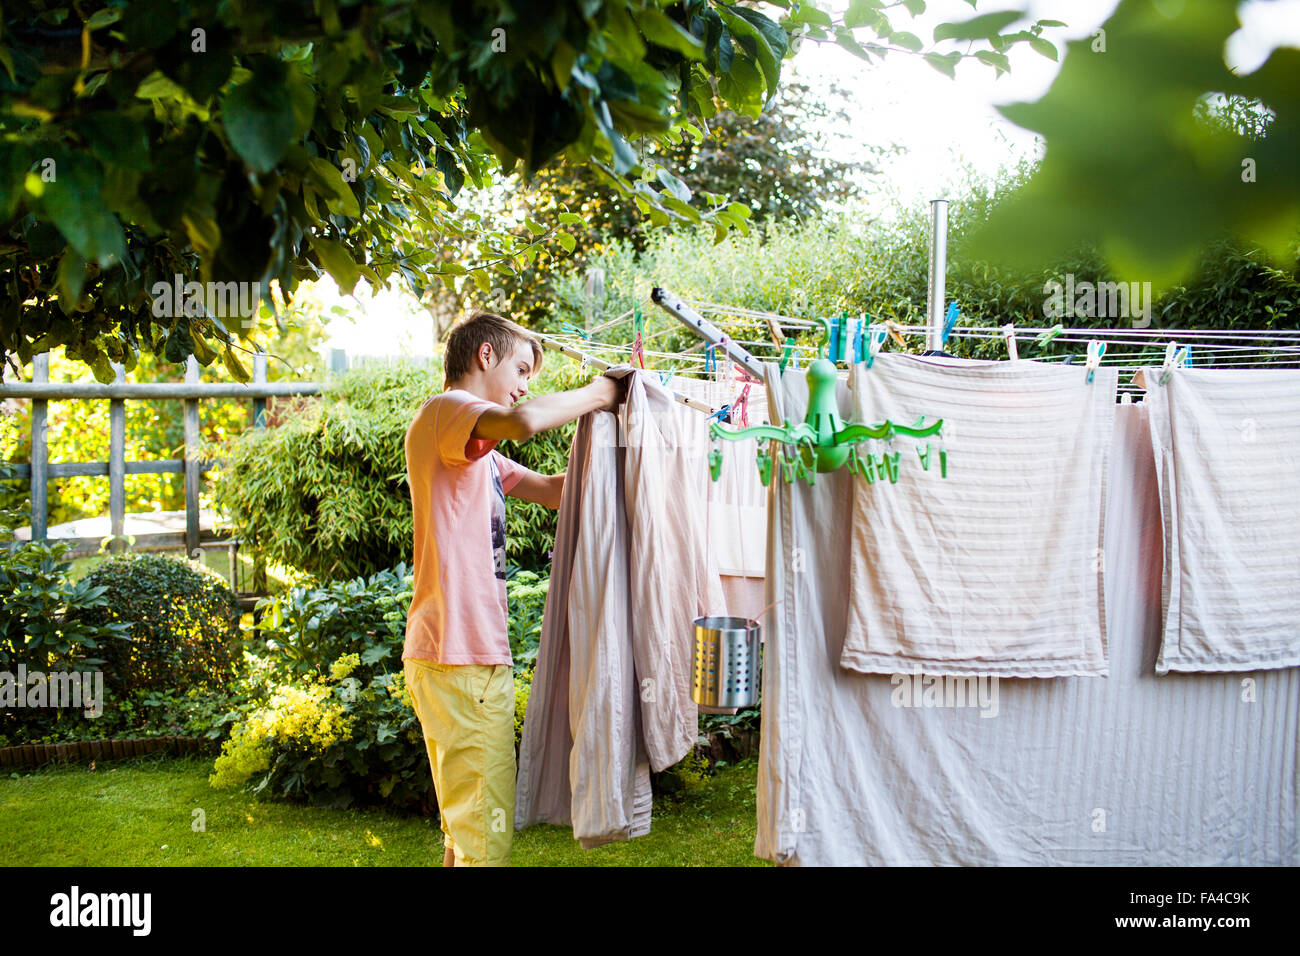 Teenage boy doing laundry work in garden - Stock Image